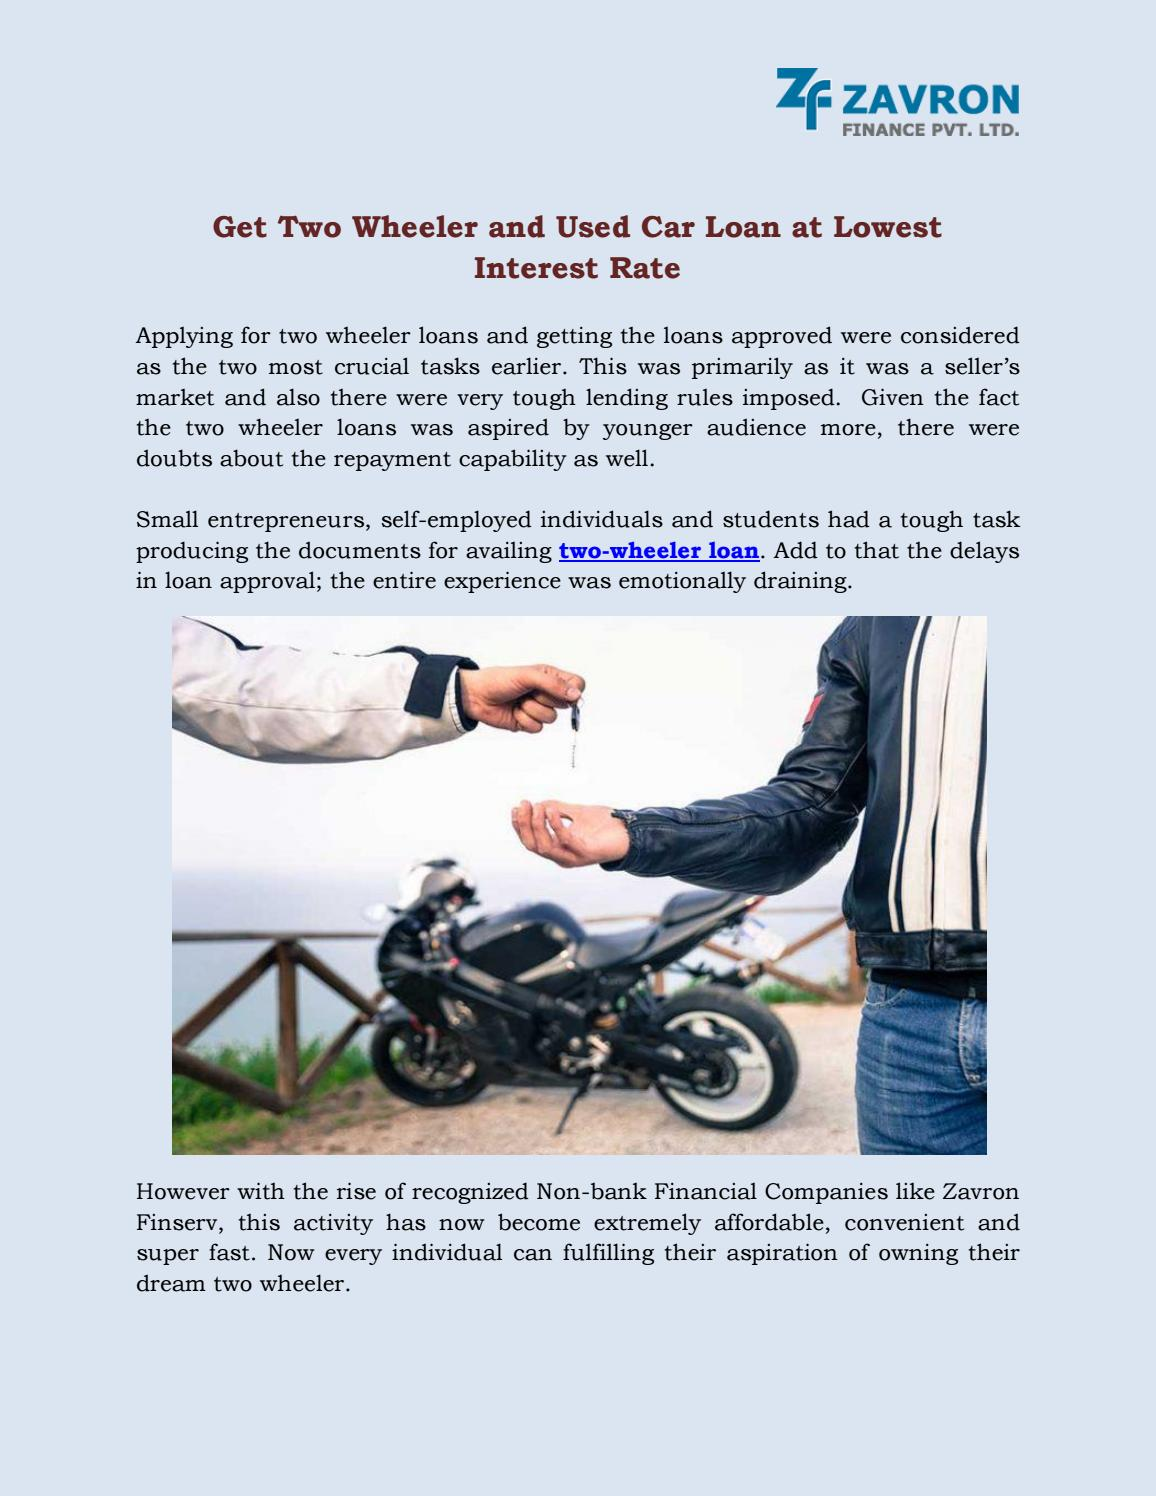 Used Car Loan >> Get Two Wheeler And Used Car Loan At Lowest Interest Rate By